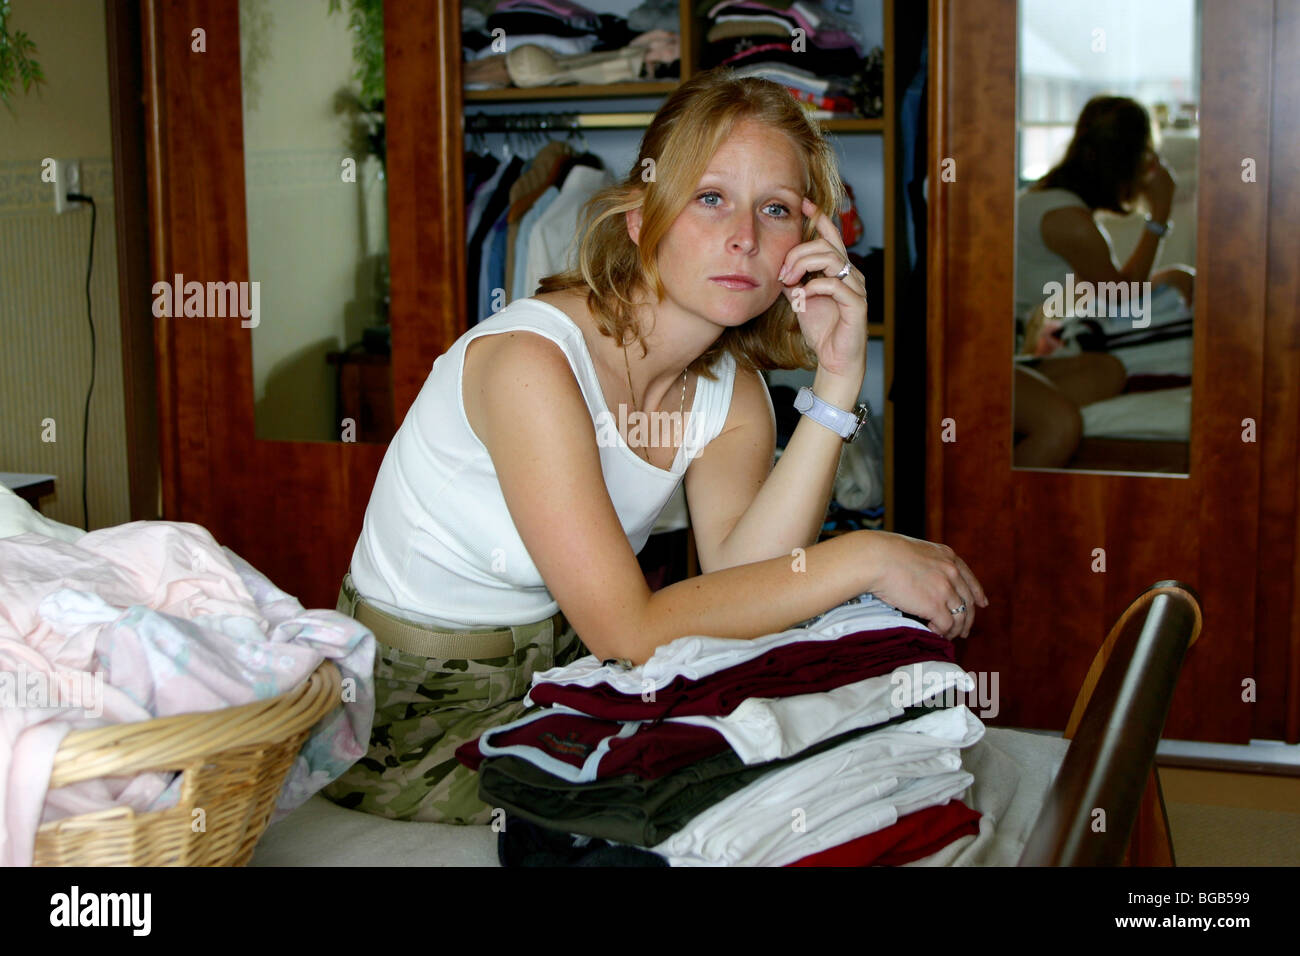 Frustrated housewife - woman sad one person only indoors - Stock Image